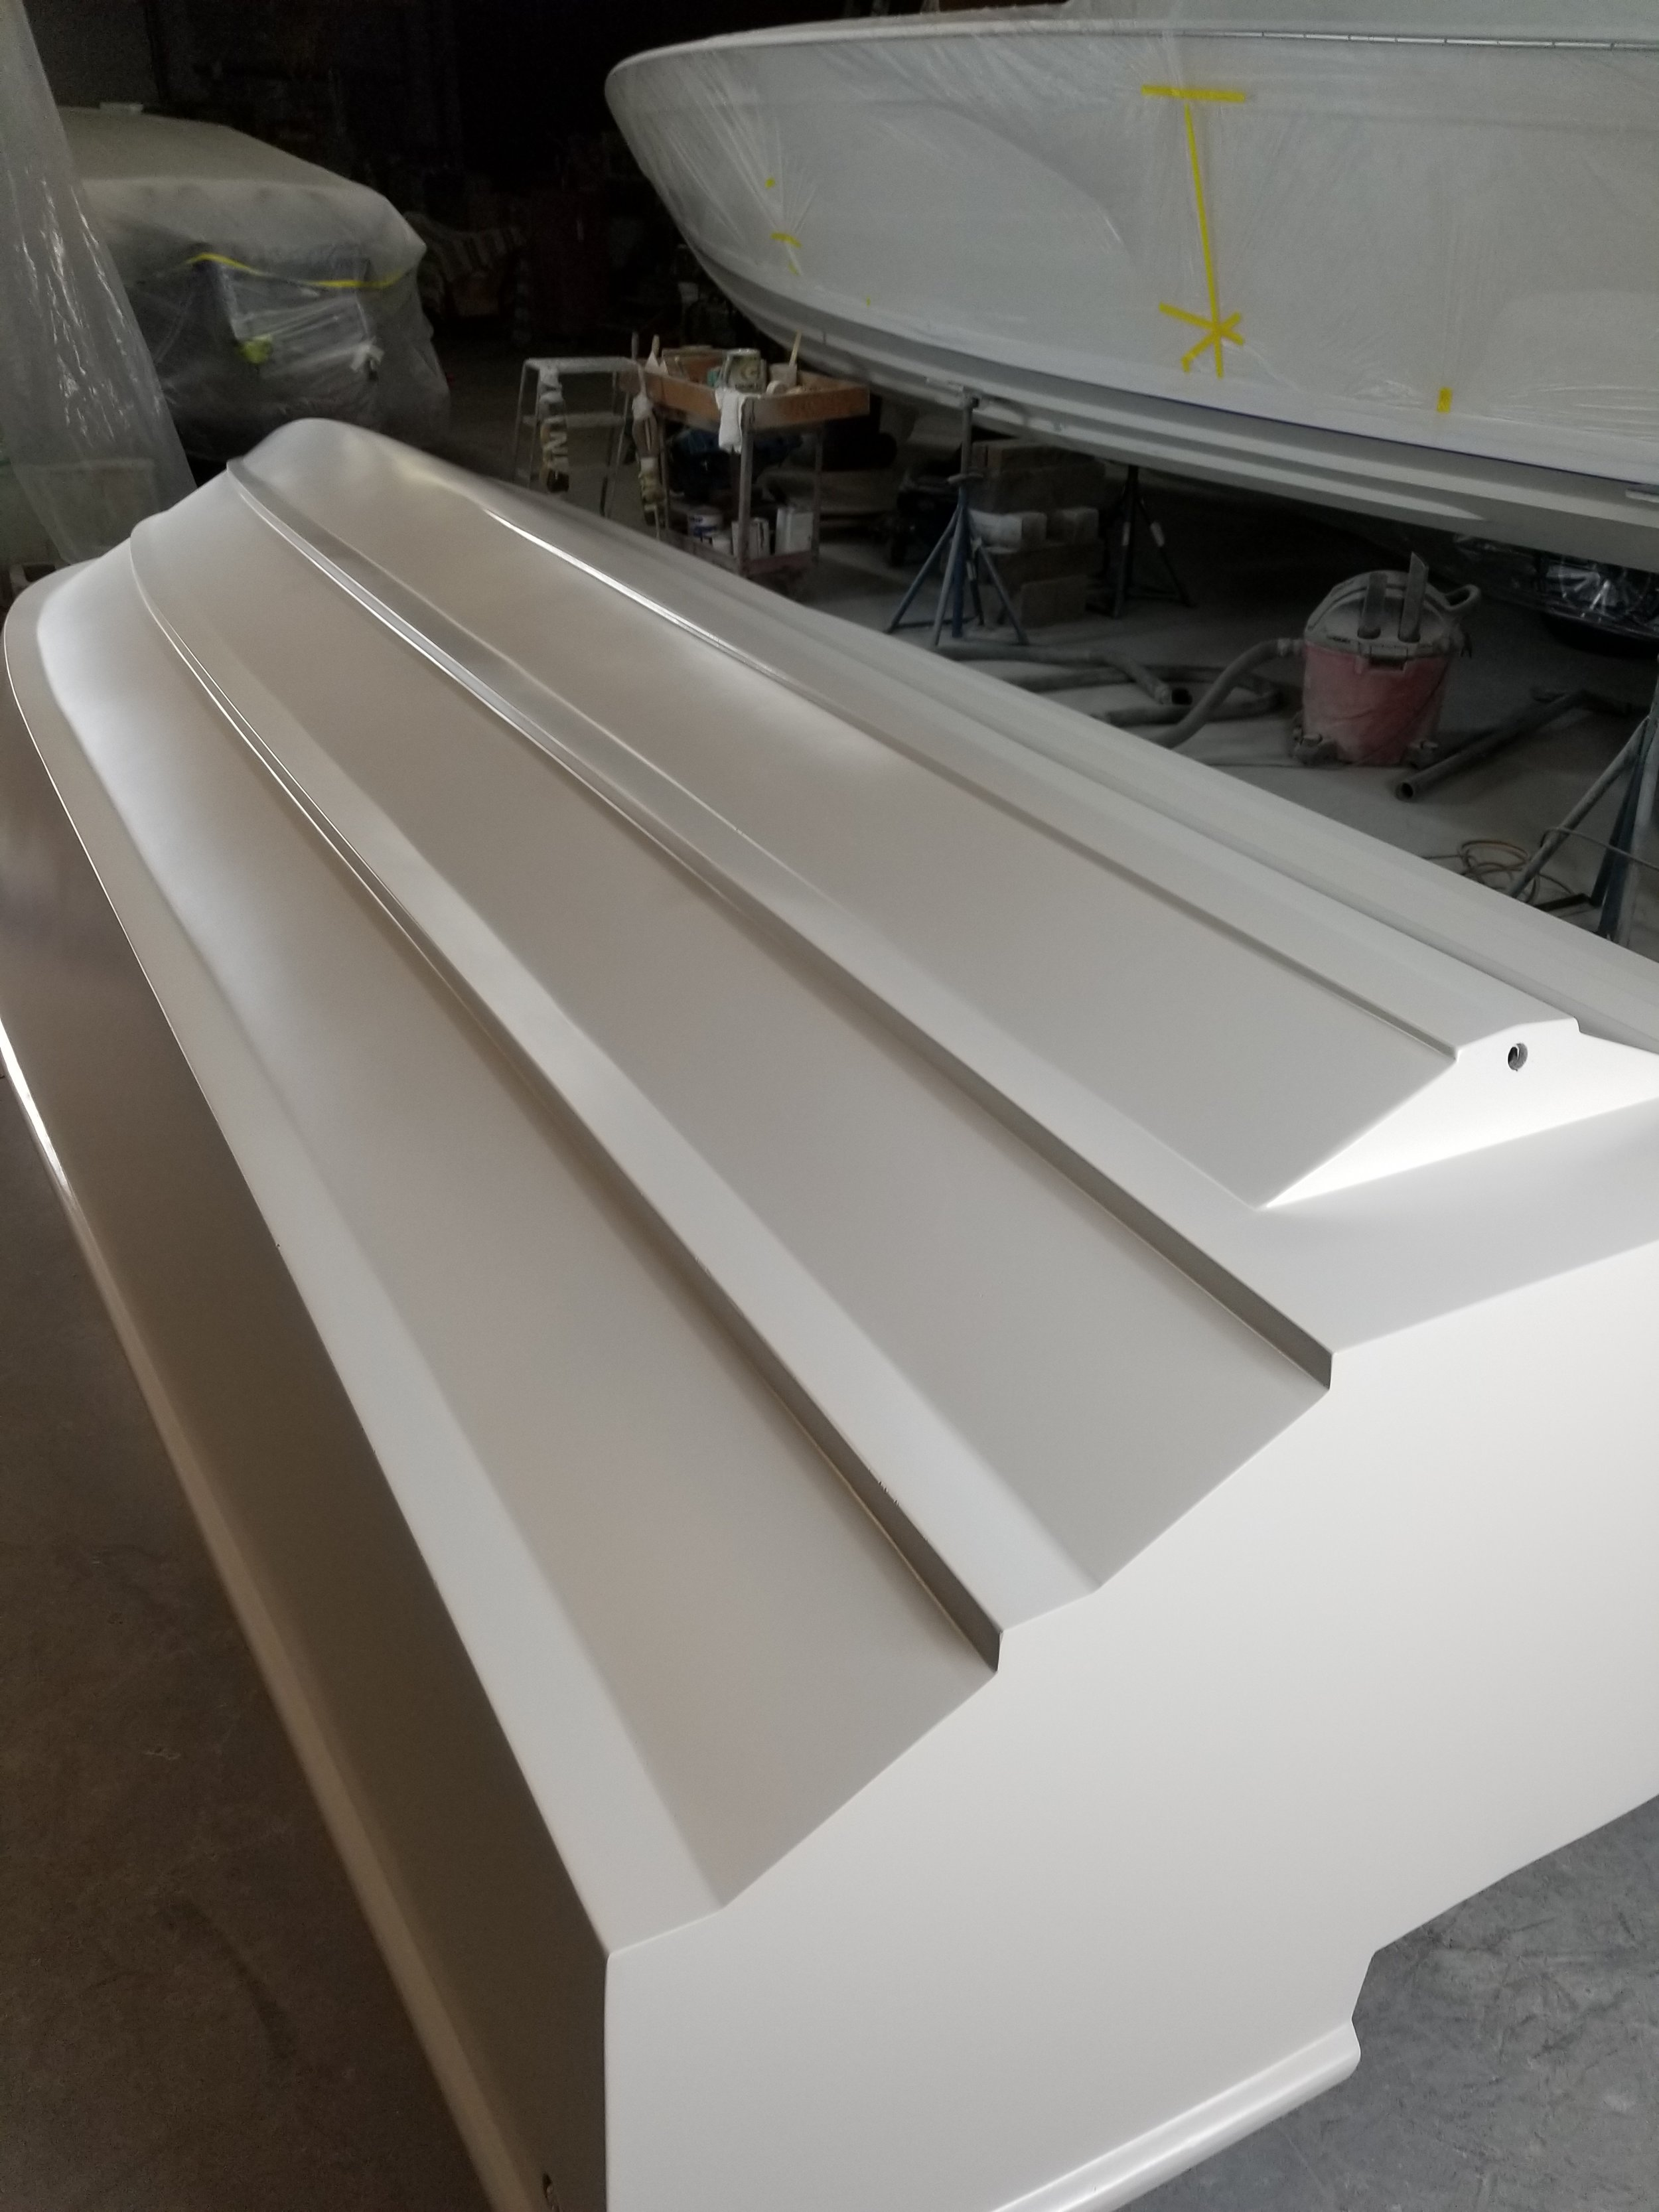 Primer - The primer coat is critical, and we used a high quality Awlgrip epoxy marine primer.